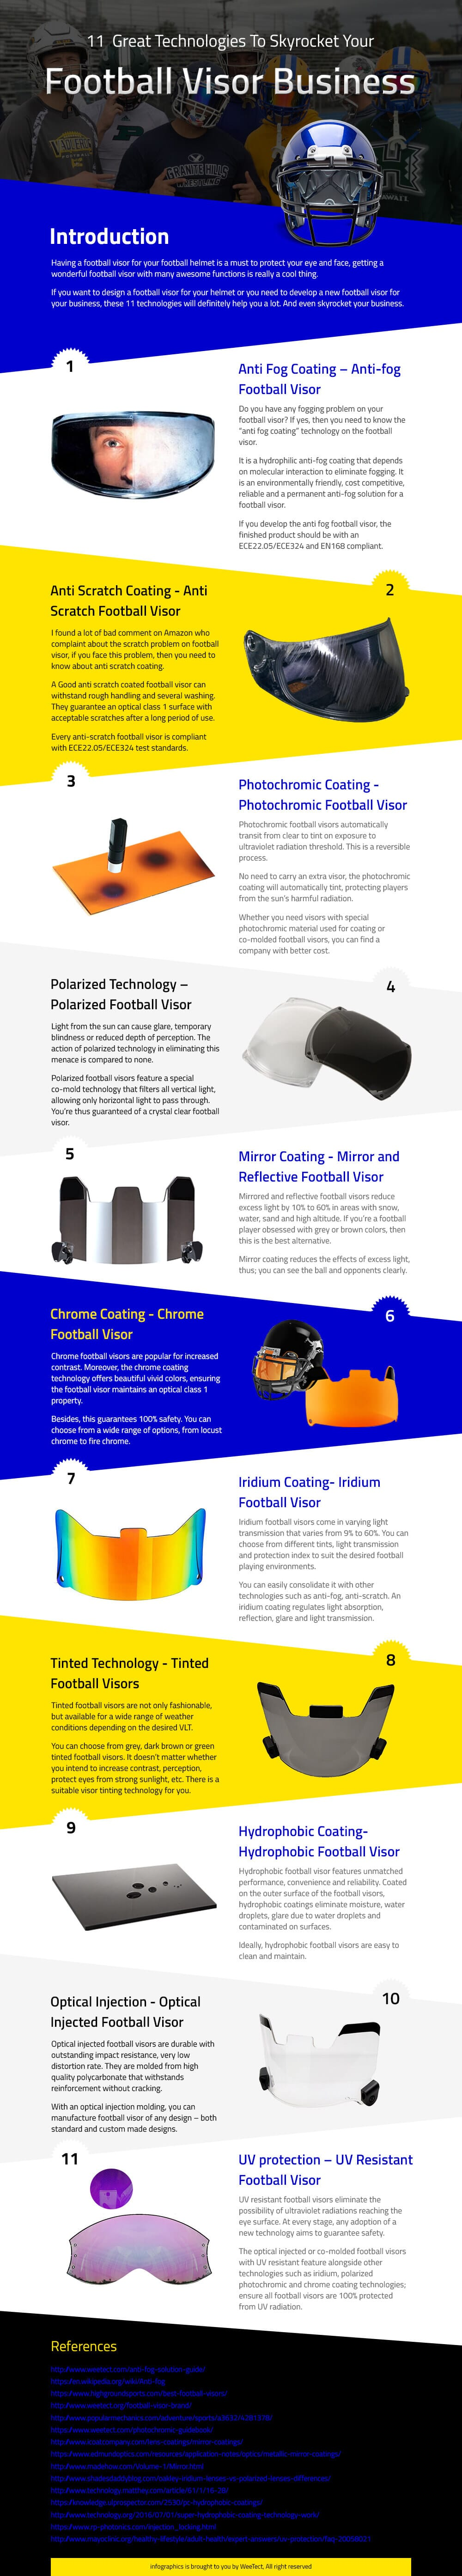 football visors technolgy